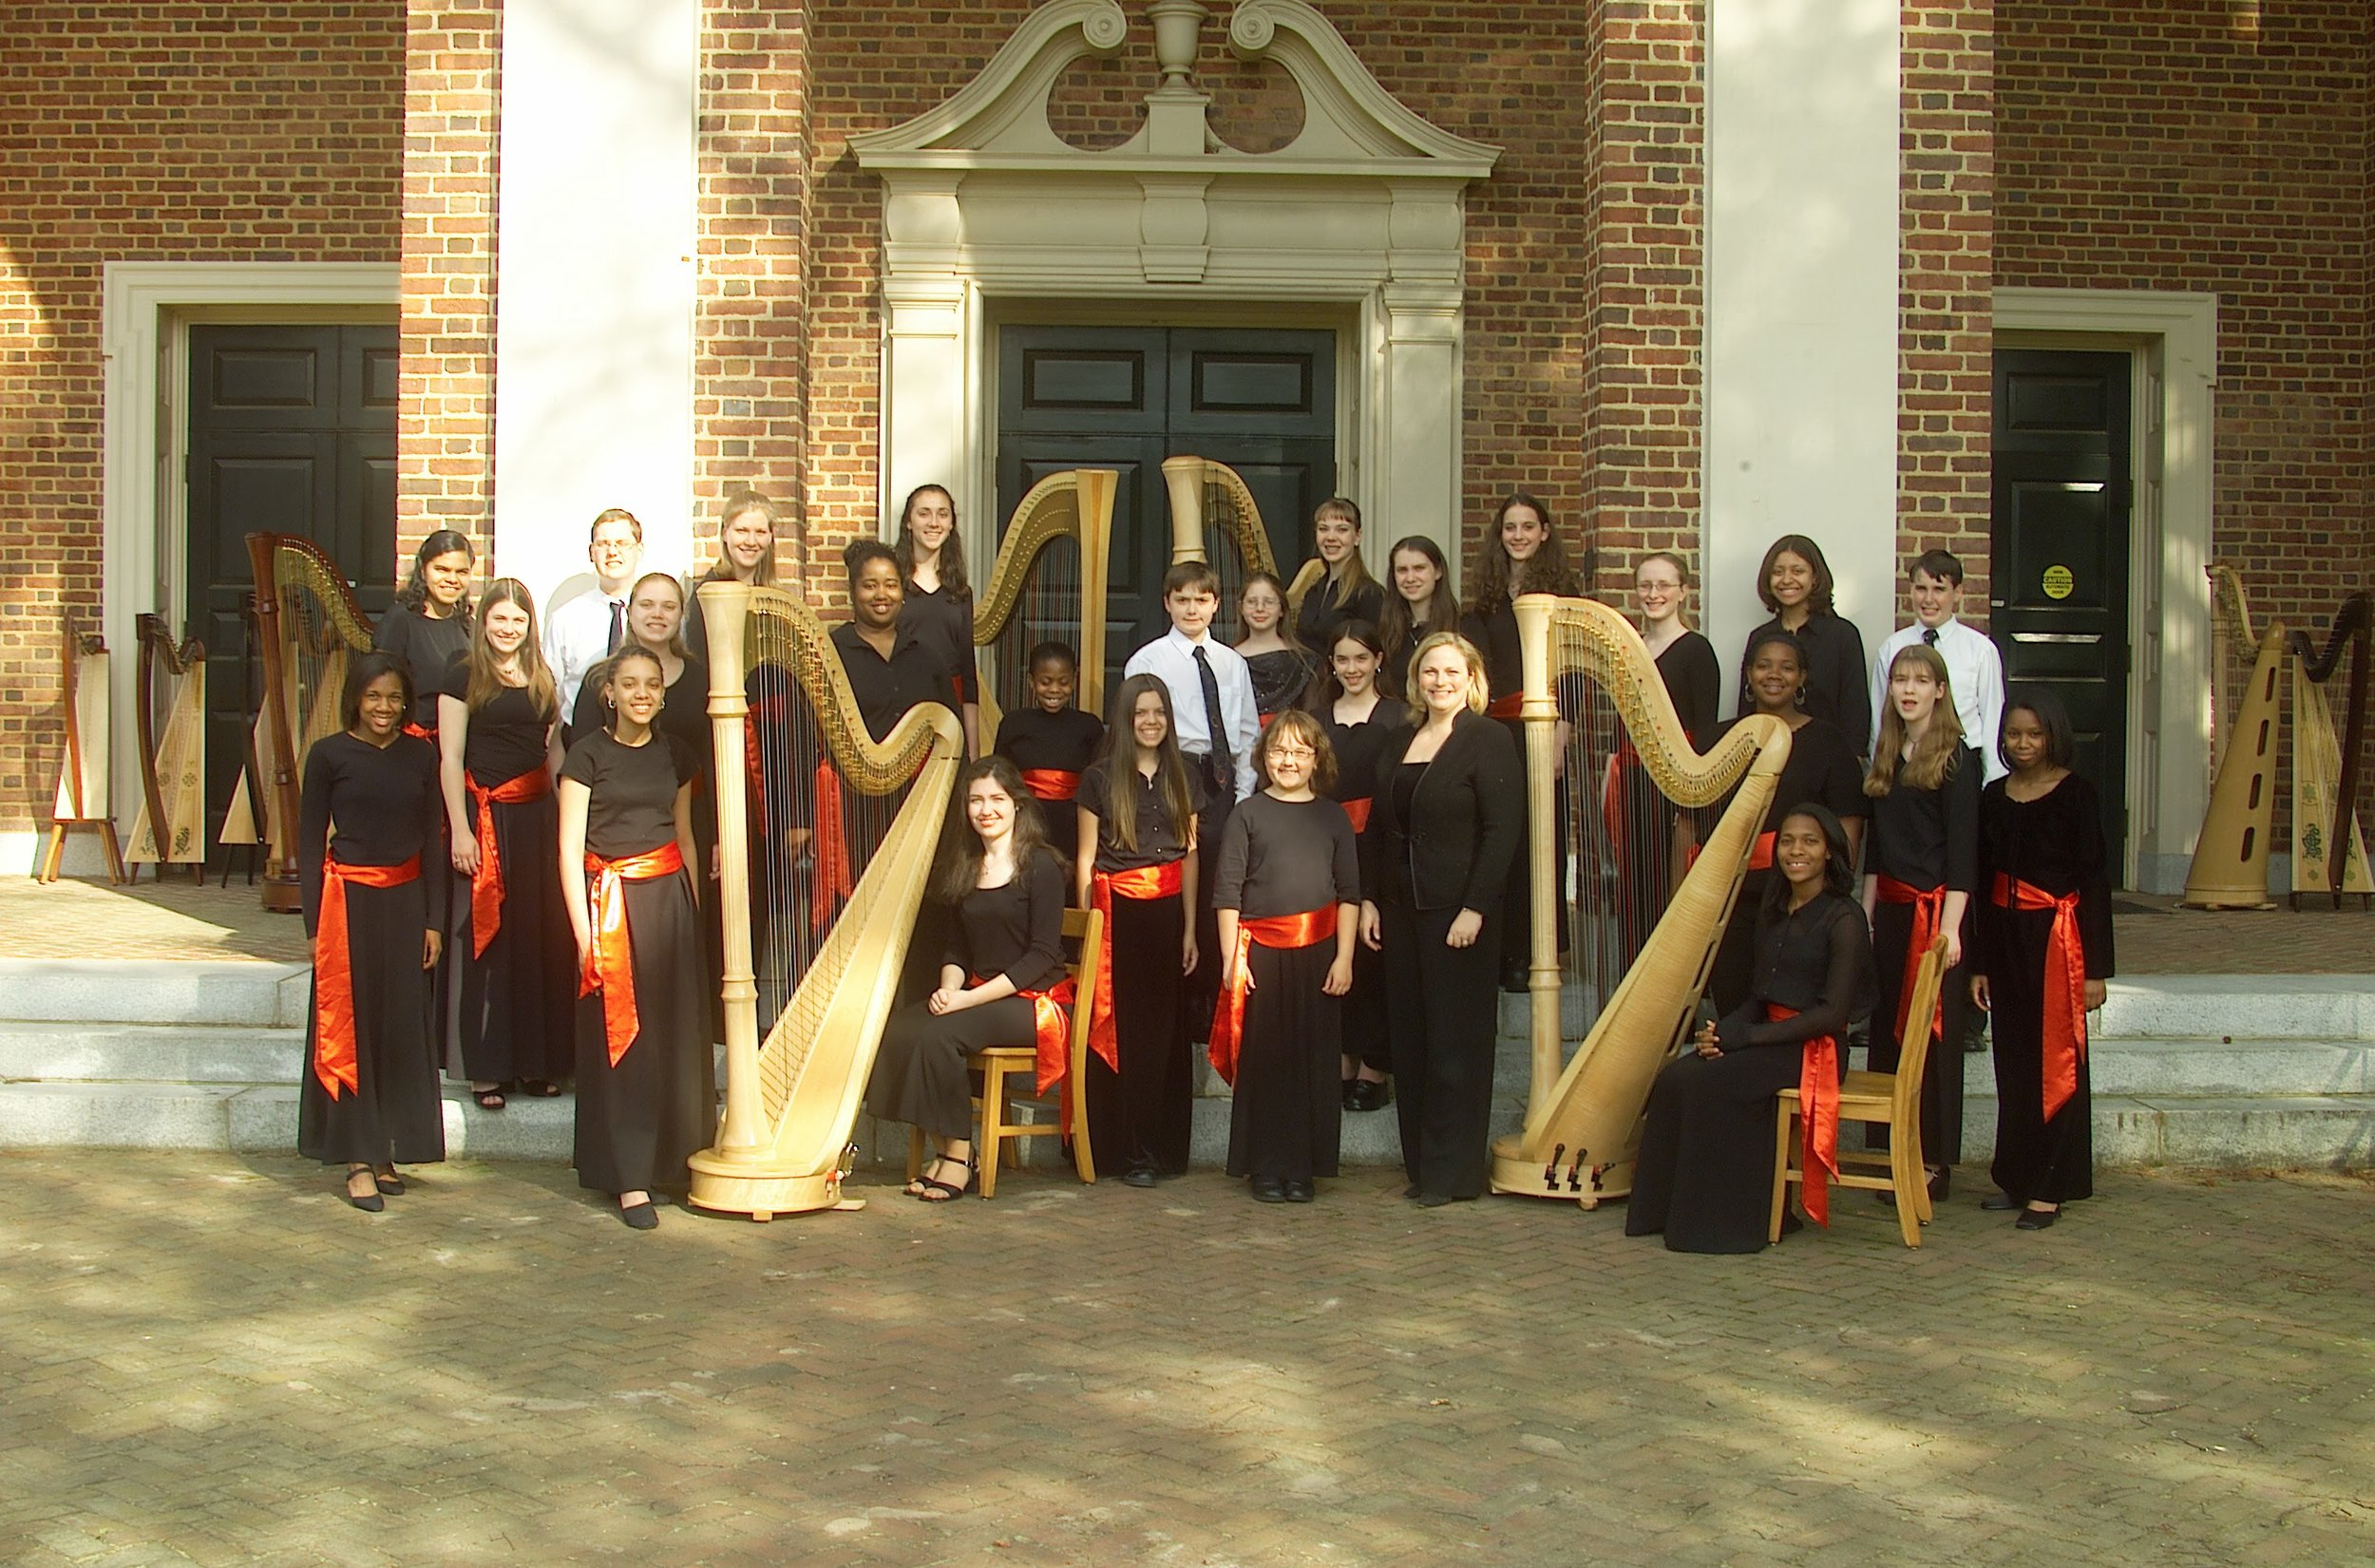 An early photo of the American Youth Harp Ensemble, 2000